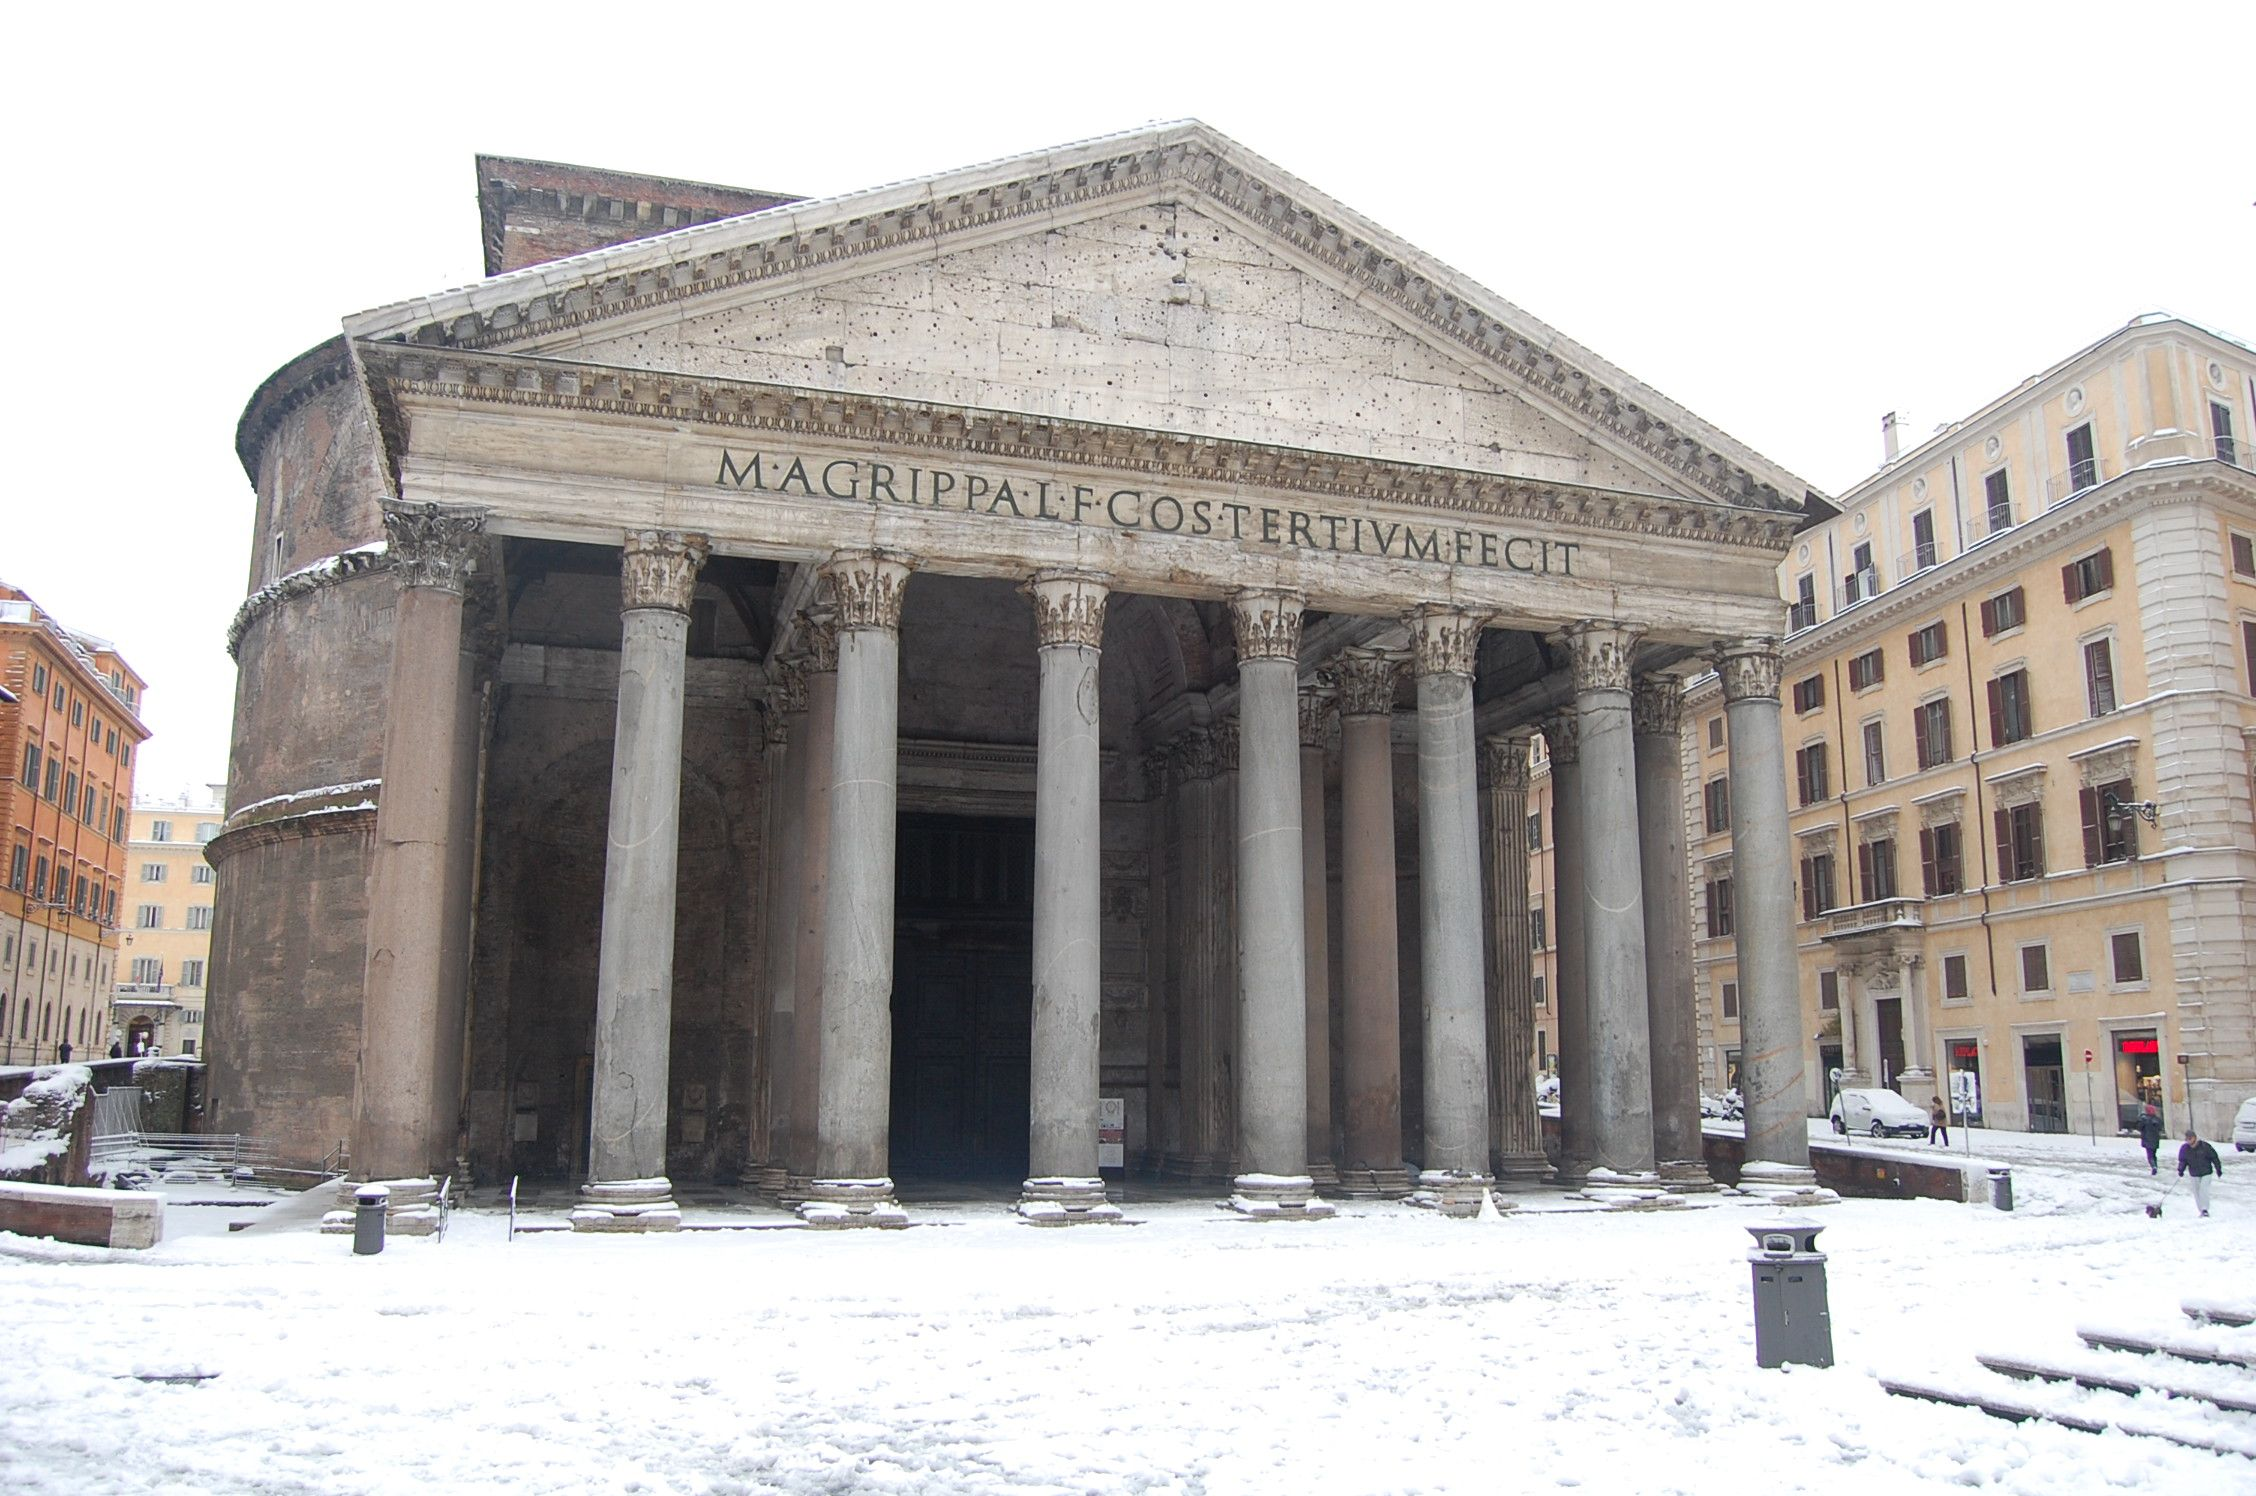 The Pantheon in the snow